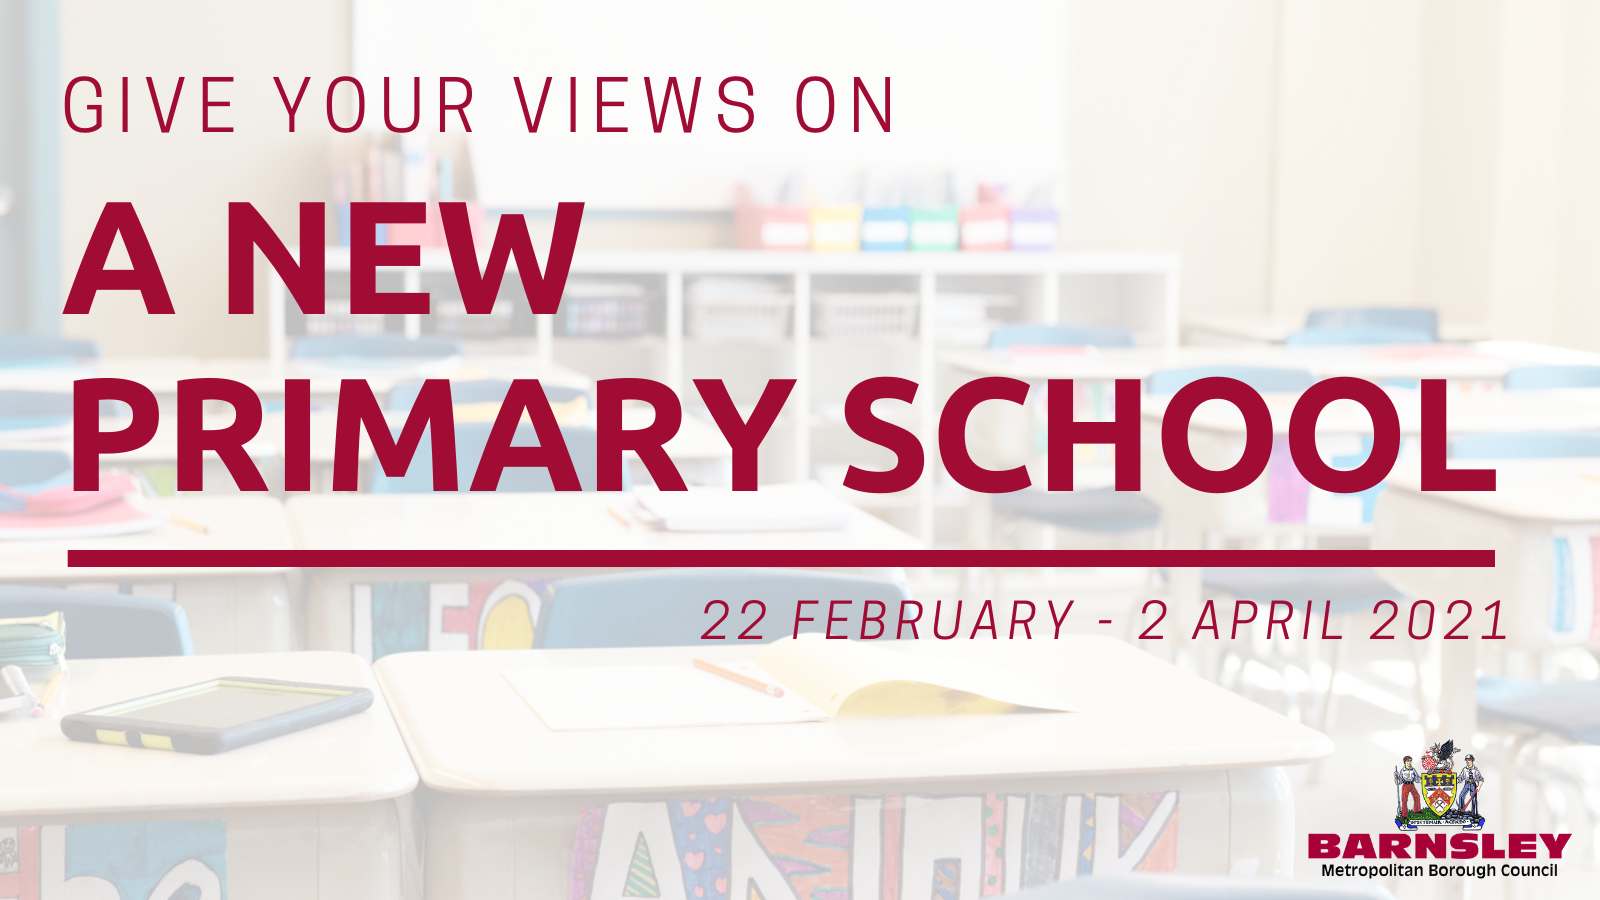 Give your views on a new primary school